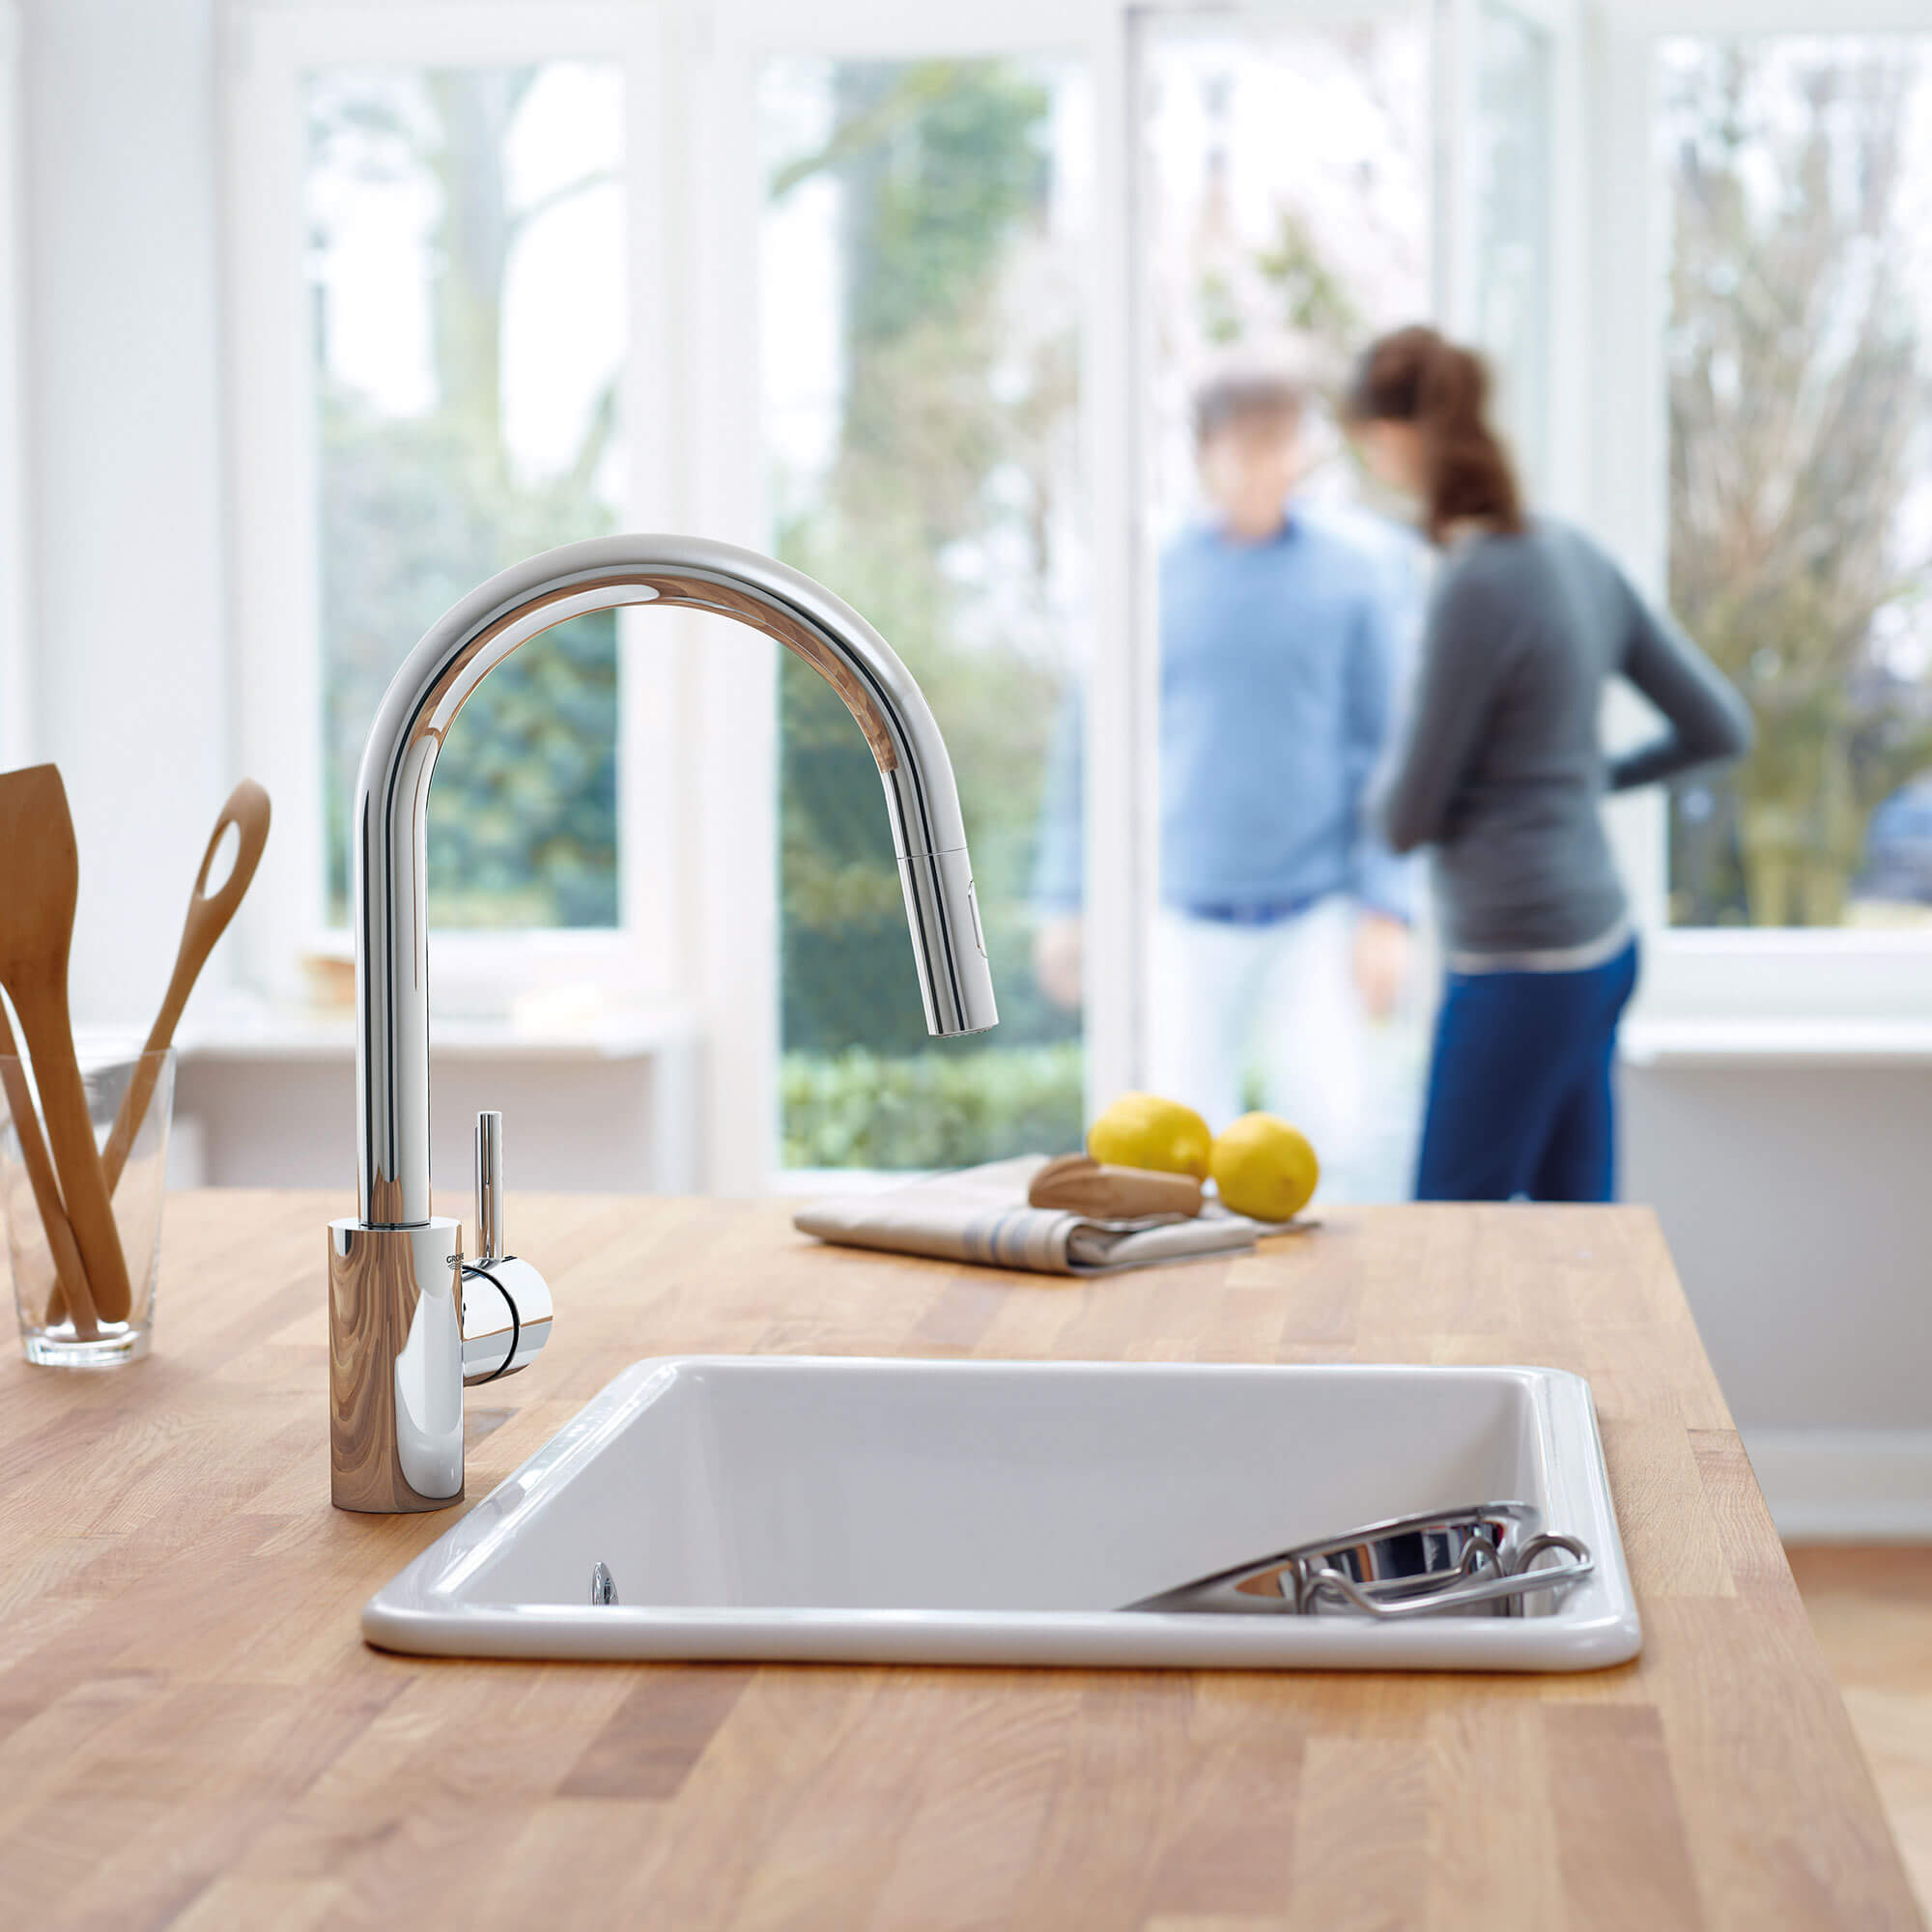 Concetta Kitchen Faucet in Kitchen with People Opening a Door